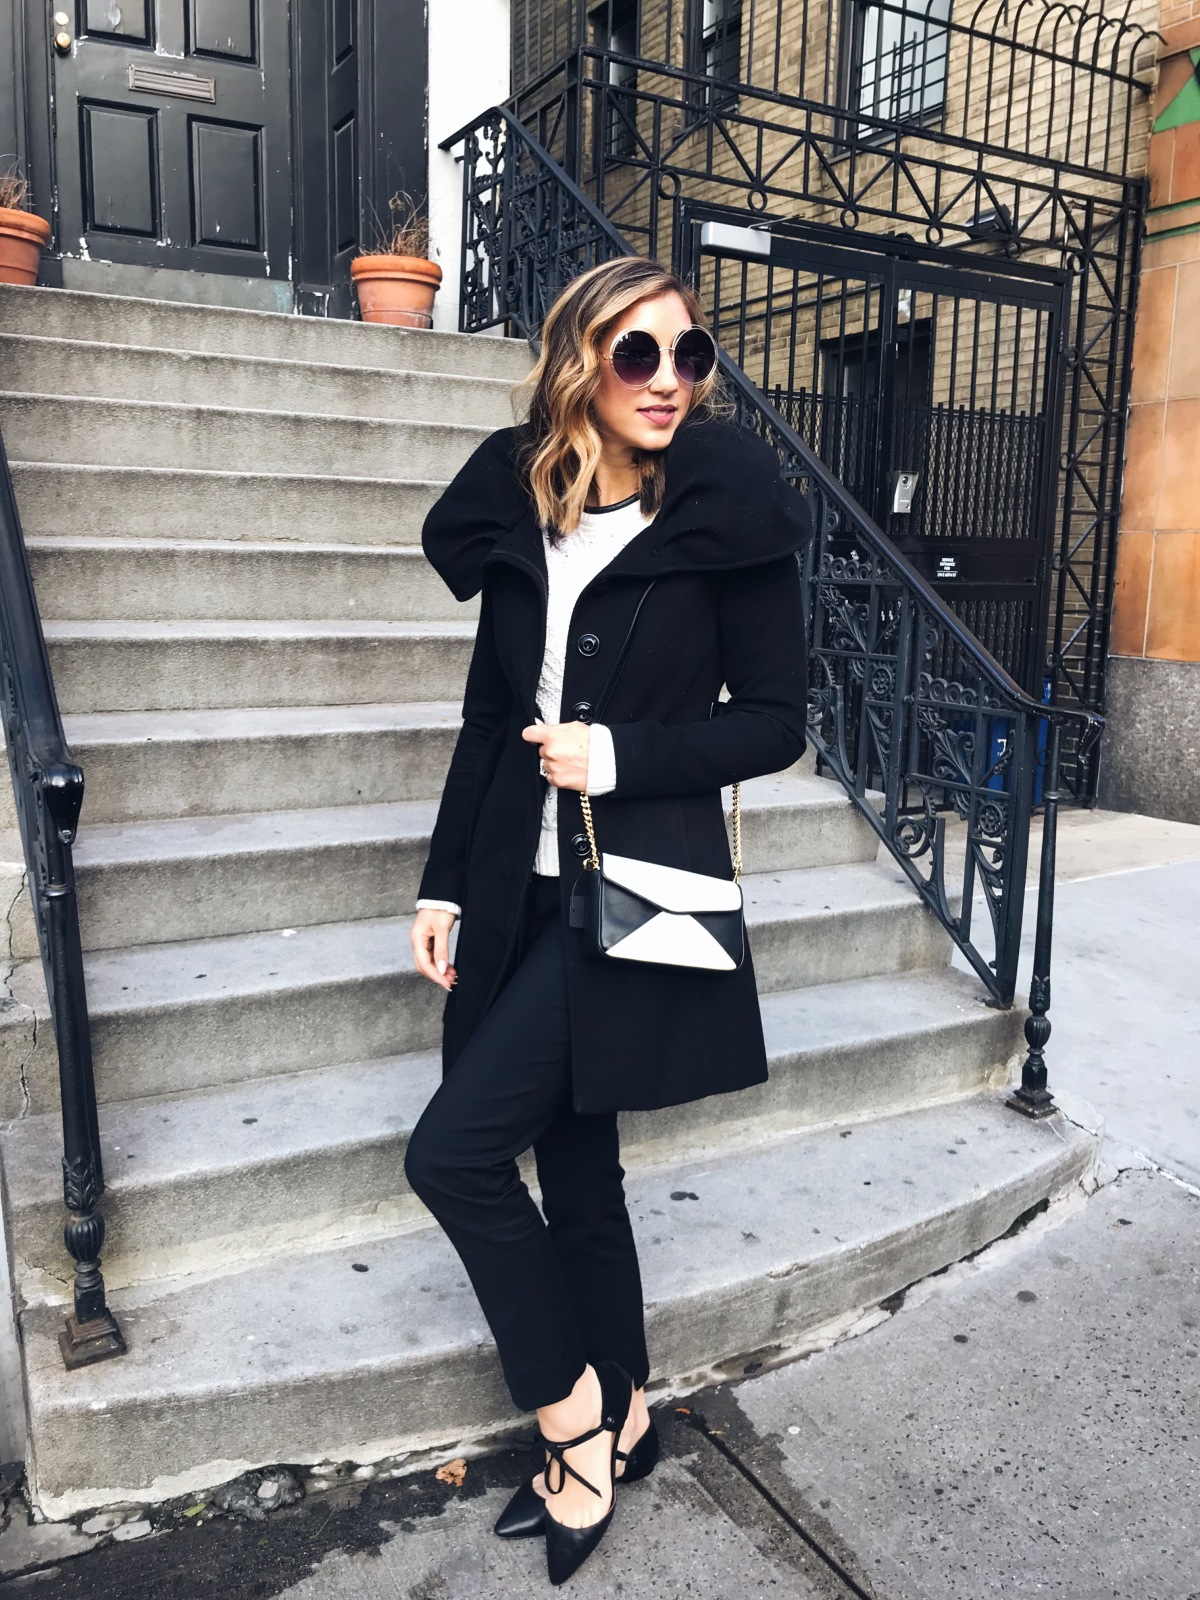 Zara-coat-holiday-holidays-thanksgiving-style-fashion-dressy-casual-office party-glam-chic-hair-shorthair-blonde-color-ZahavaNYC-Zahava-nyc-blogger-1bag3ways